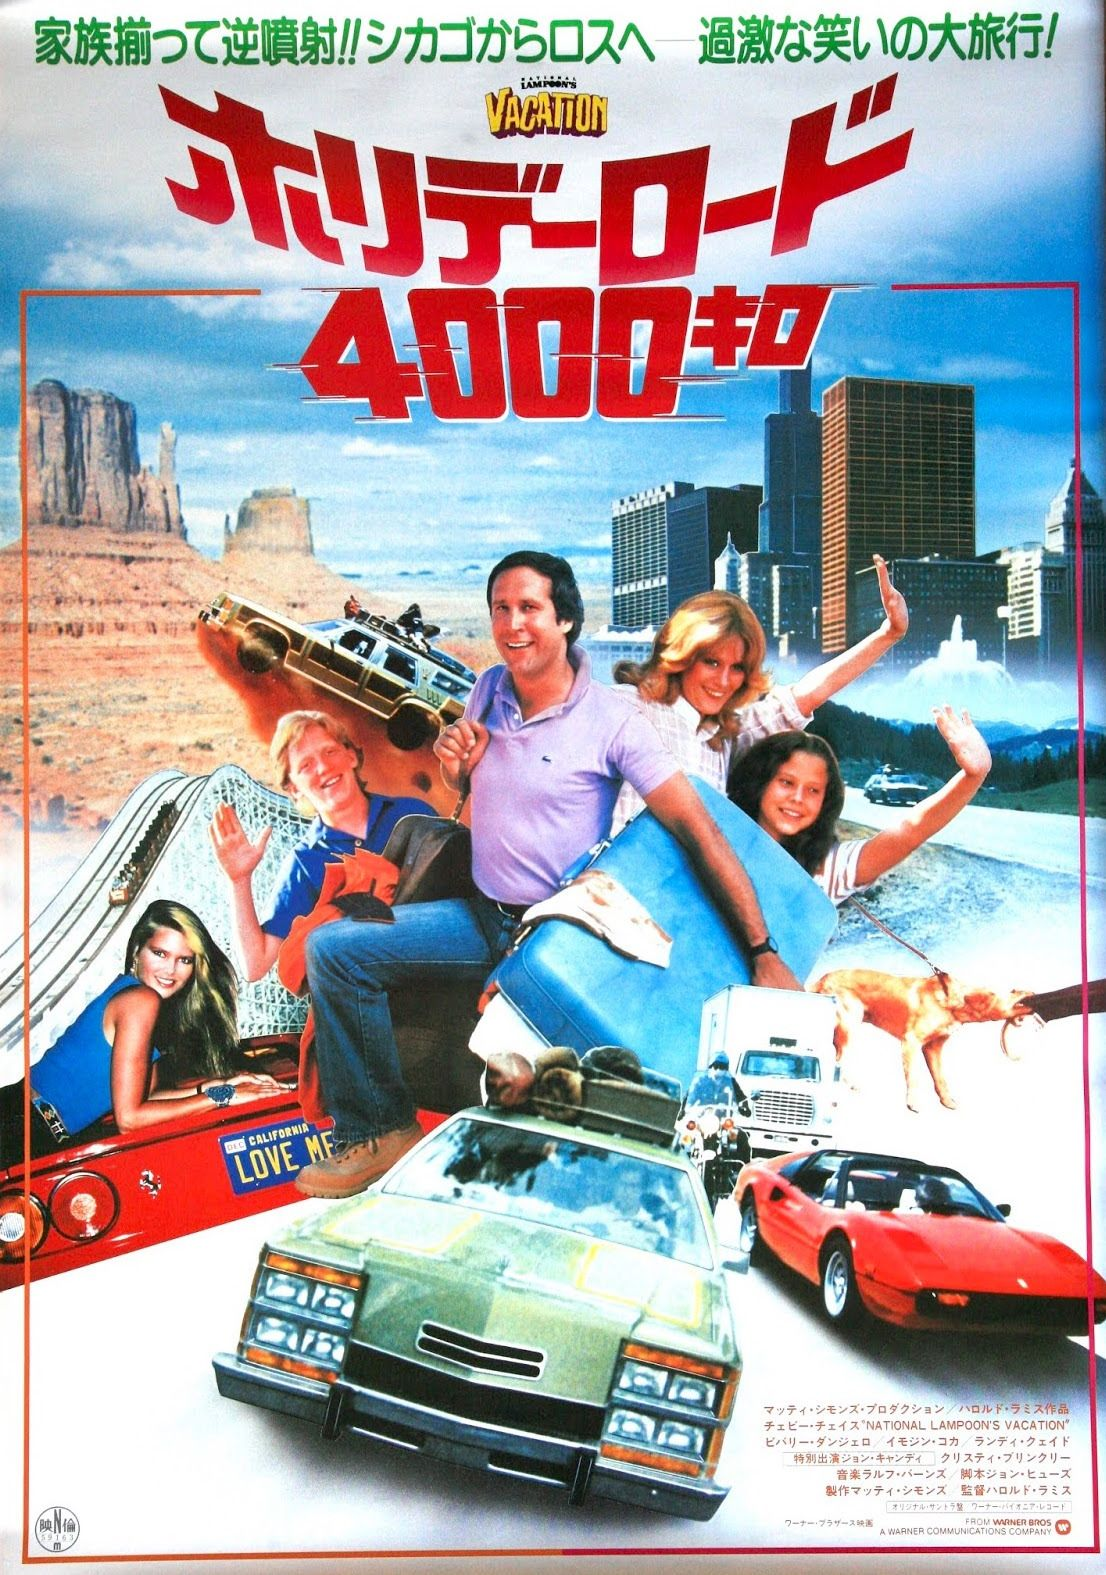 NATIONAL LAMPOON'S VACATION (1983) | Japanese poster ...